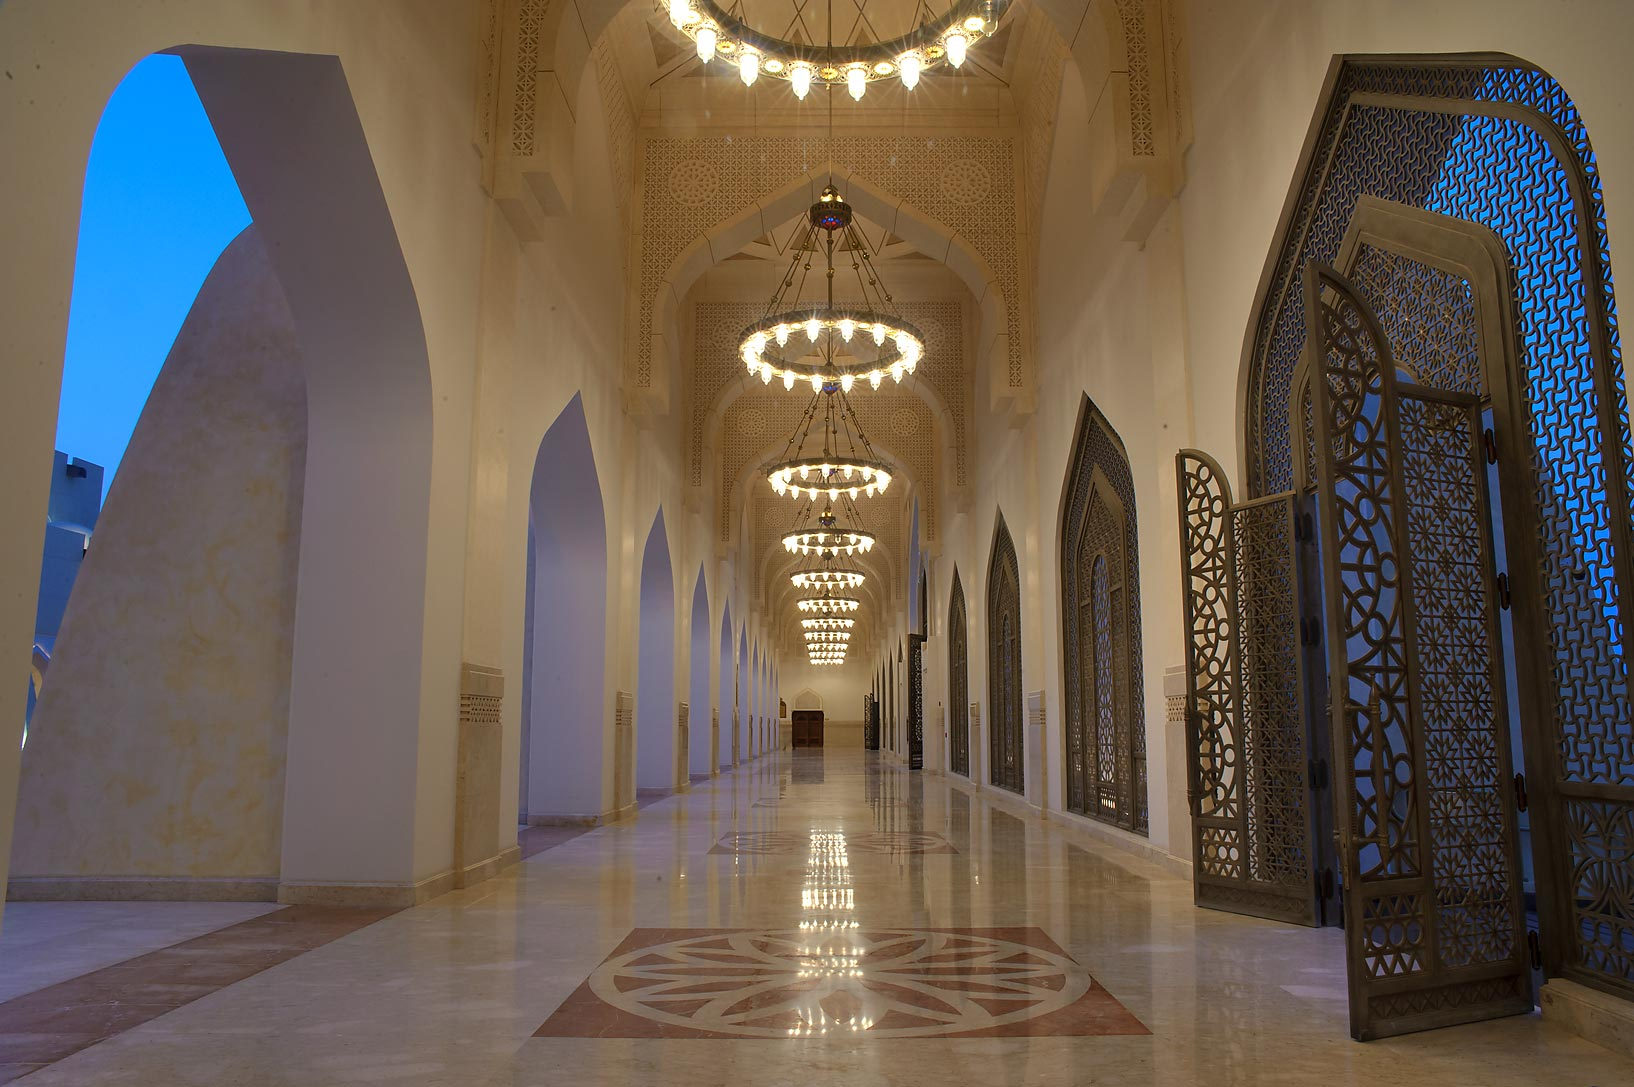 Arched entrance of courtyard of State Mosque...Ibn Abdul Wahhab Mosque). Doha, Qatar